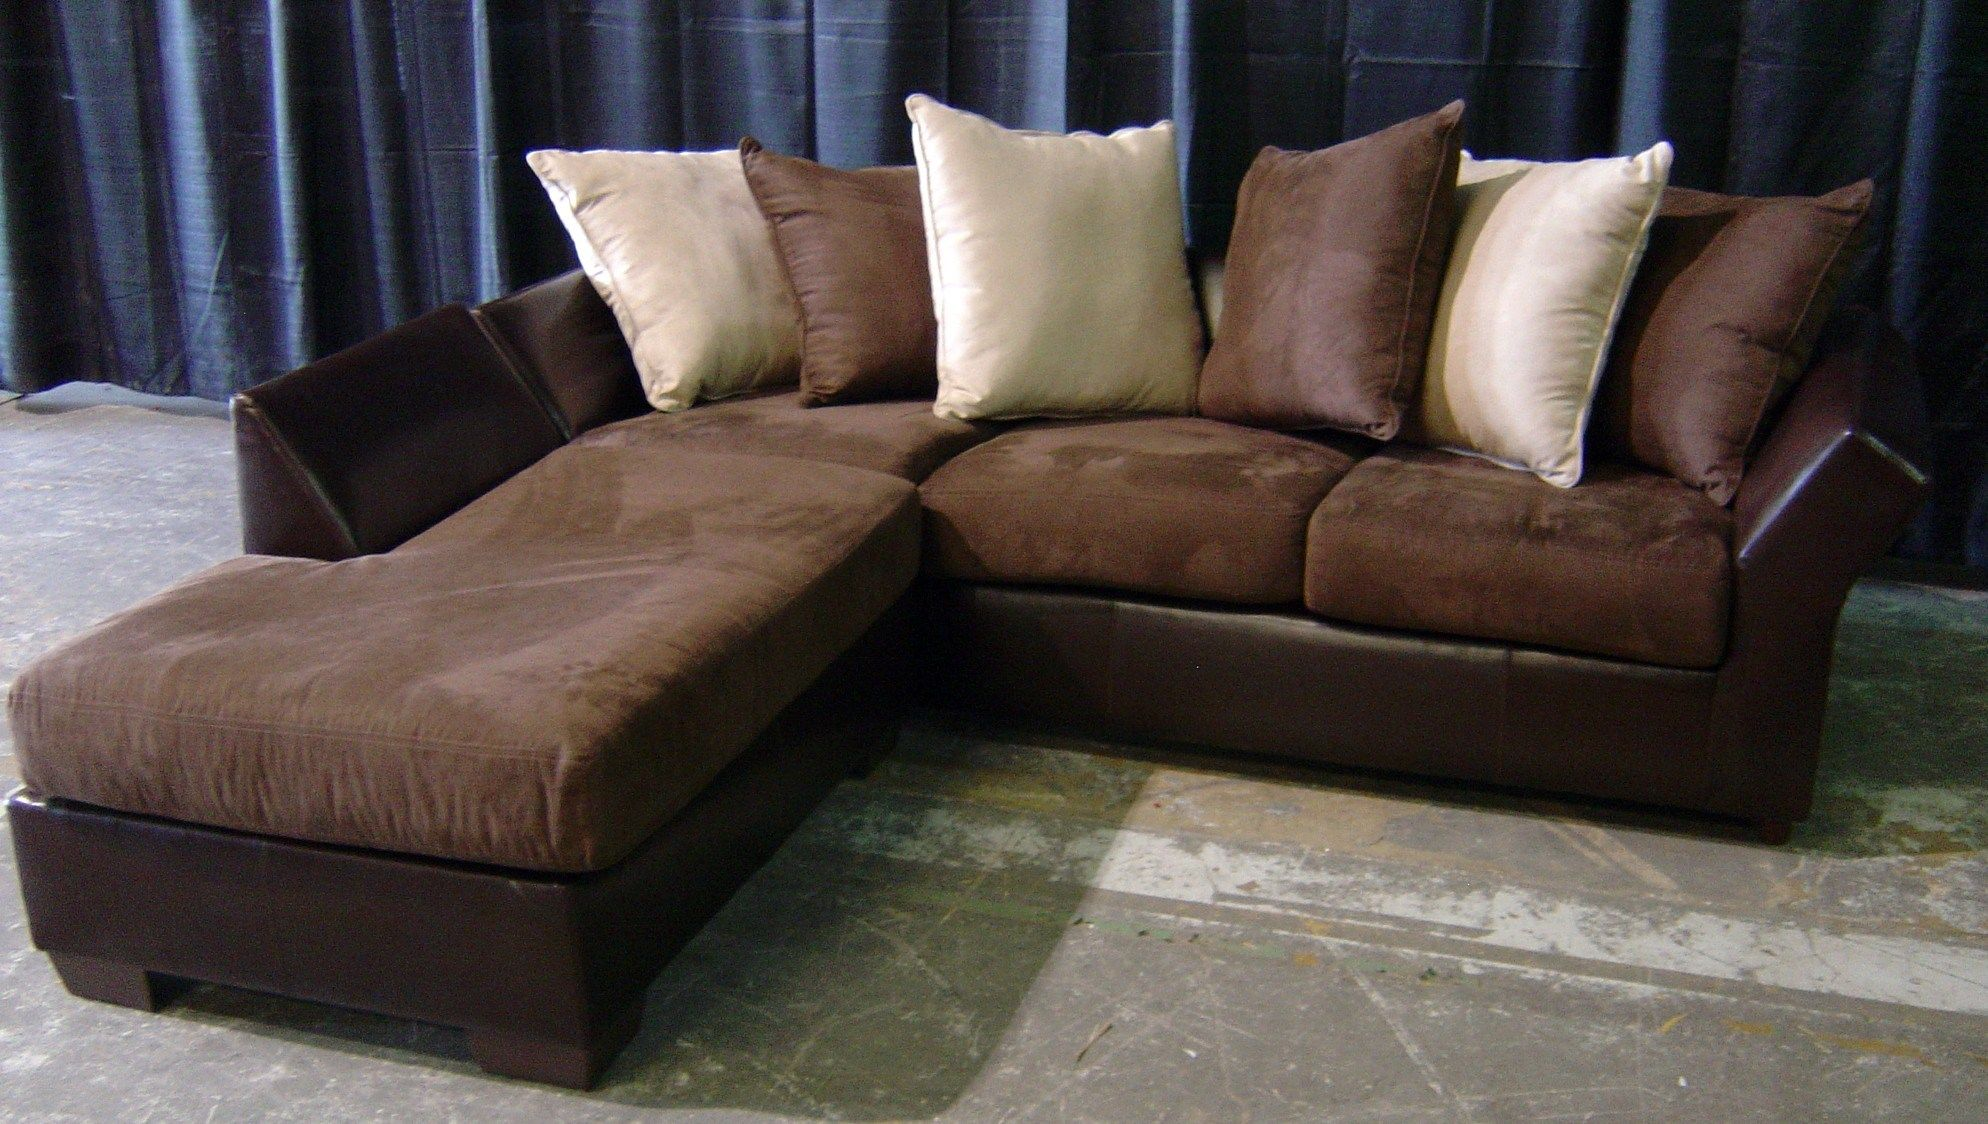 Cool Craigslist Sectional Sofa Good 53 For Your Table Ideas With